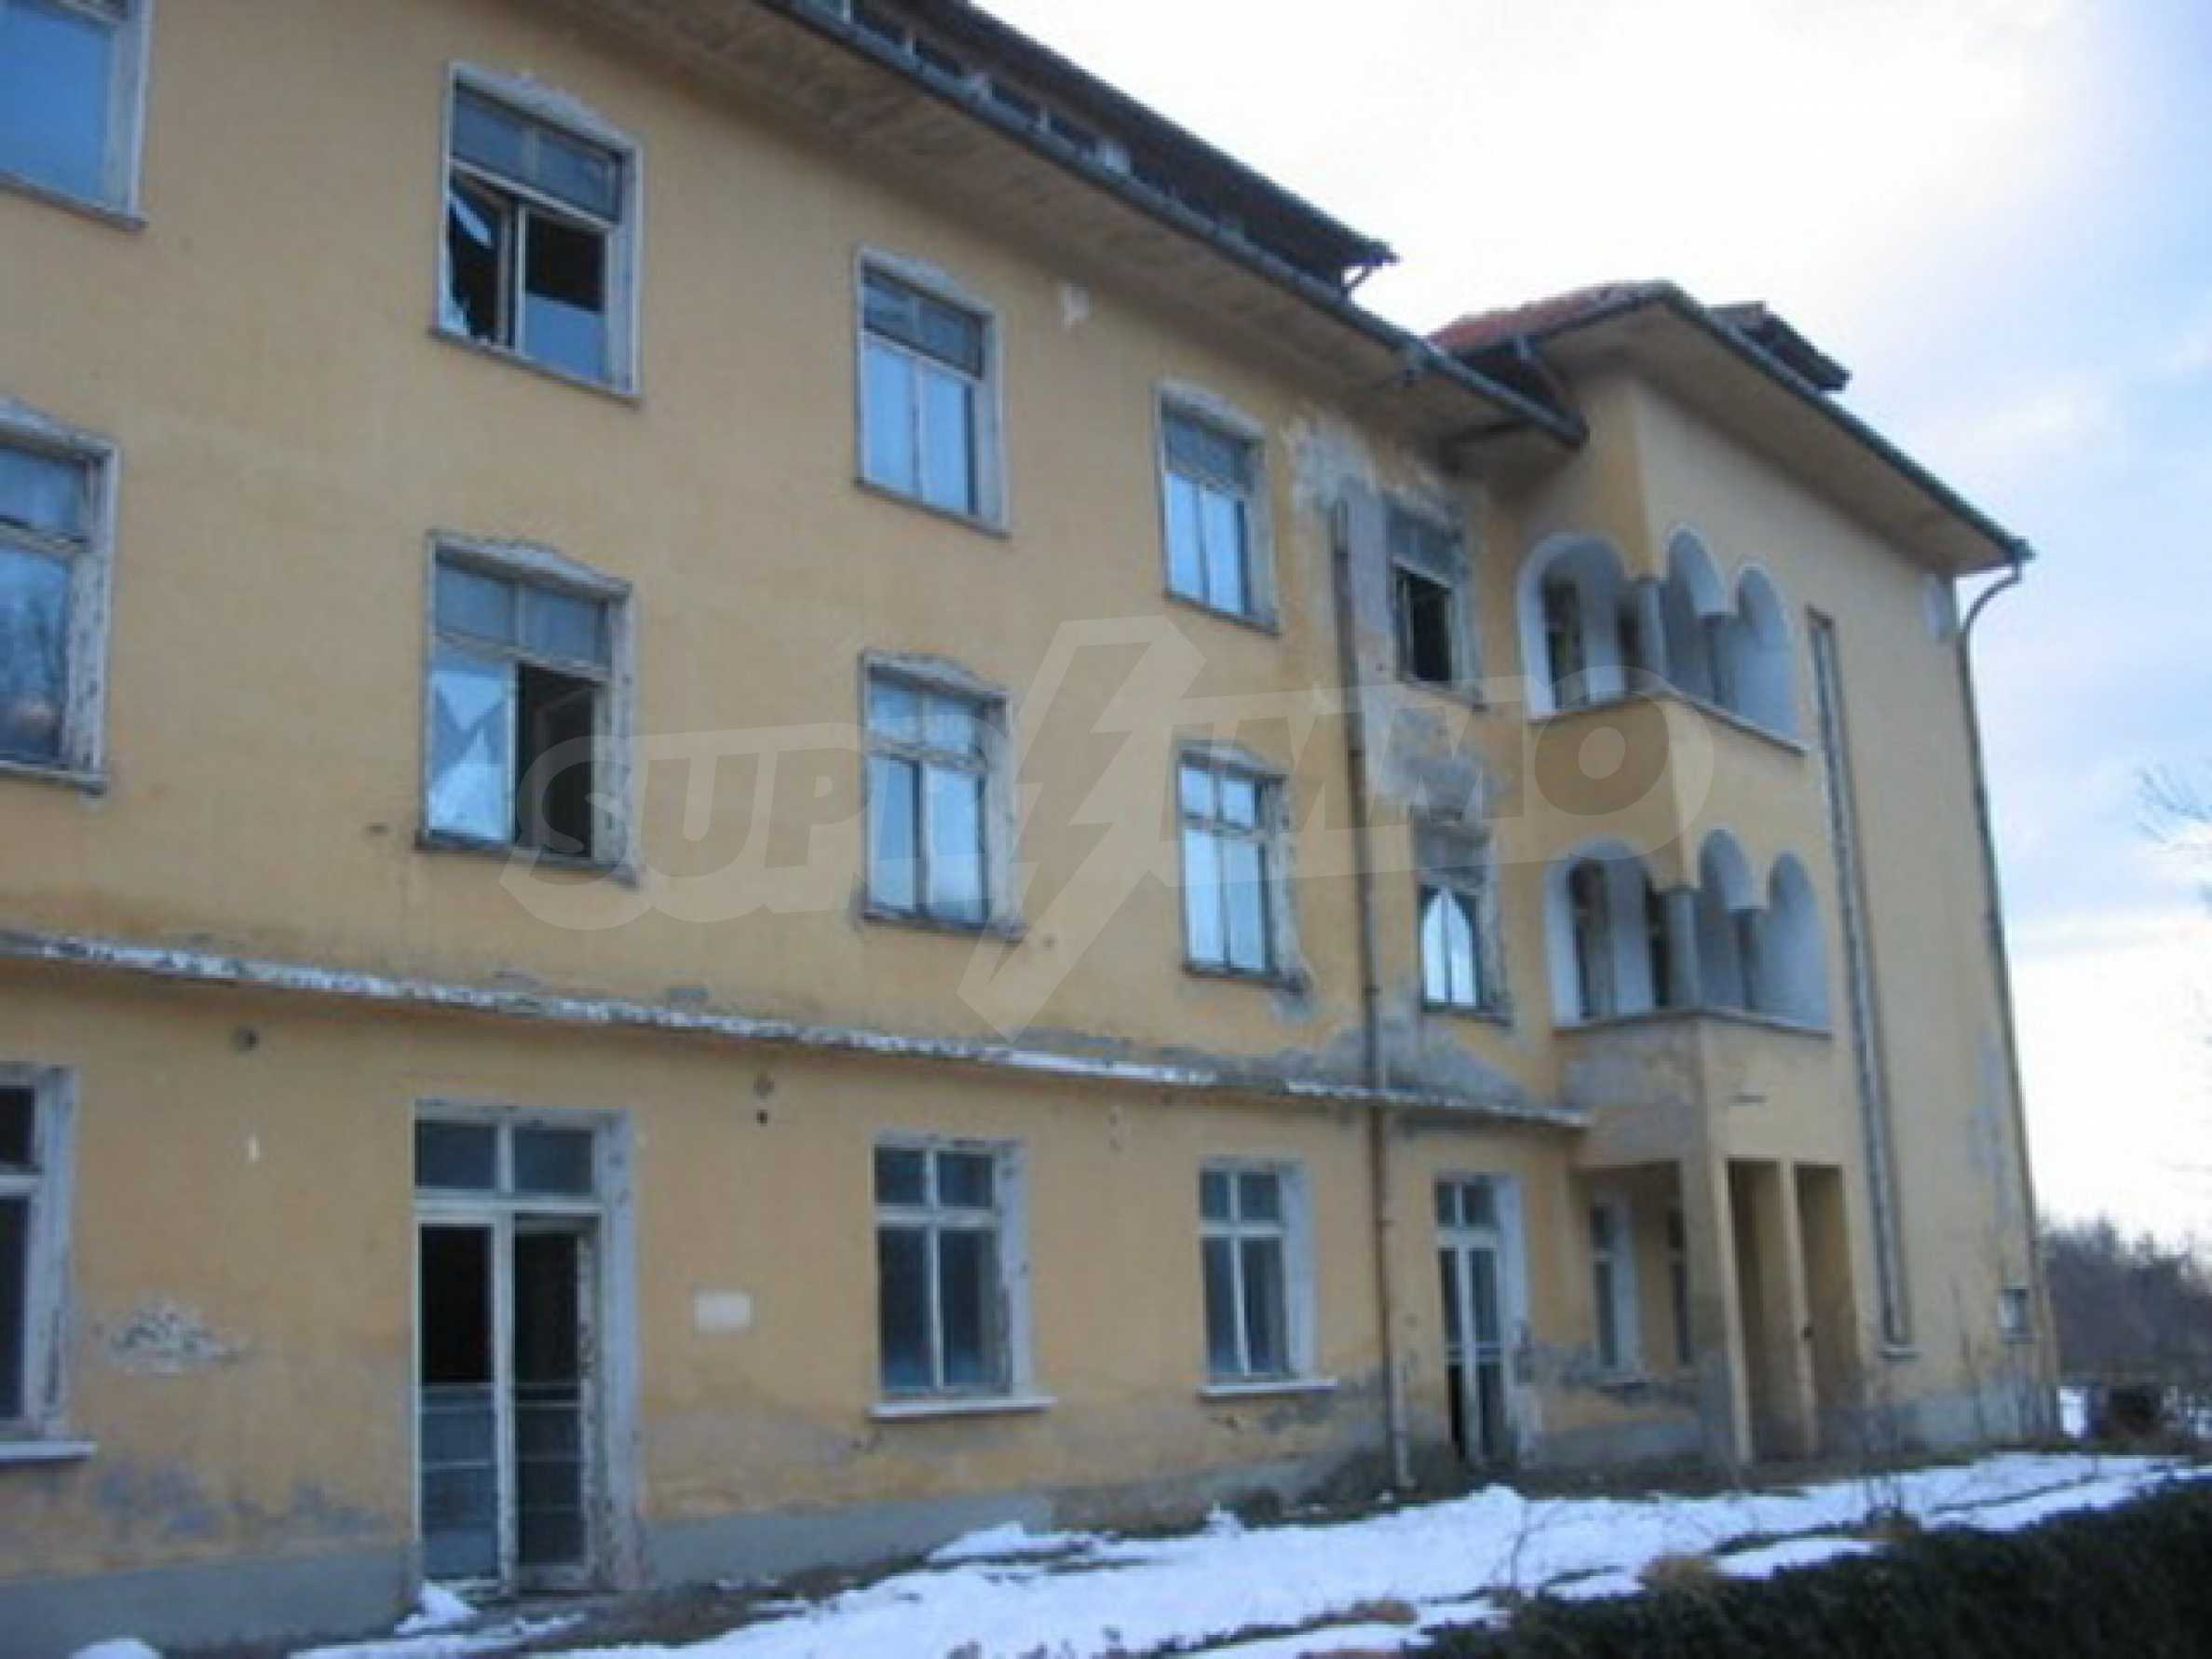 Hotel in need of complete renovation